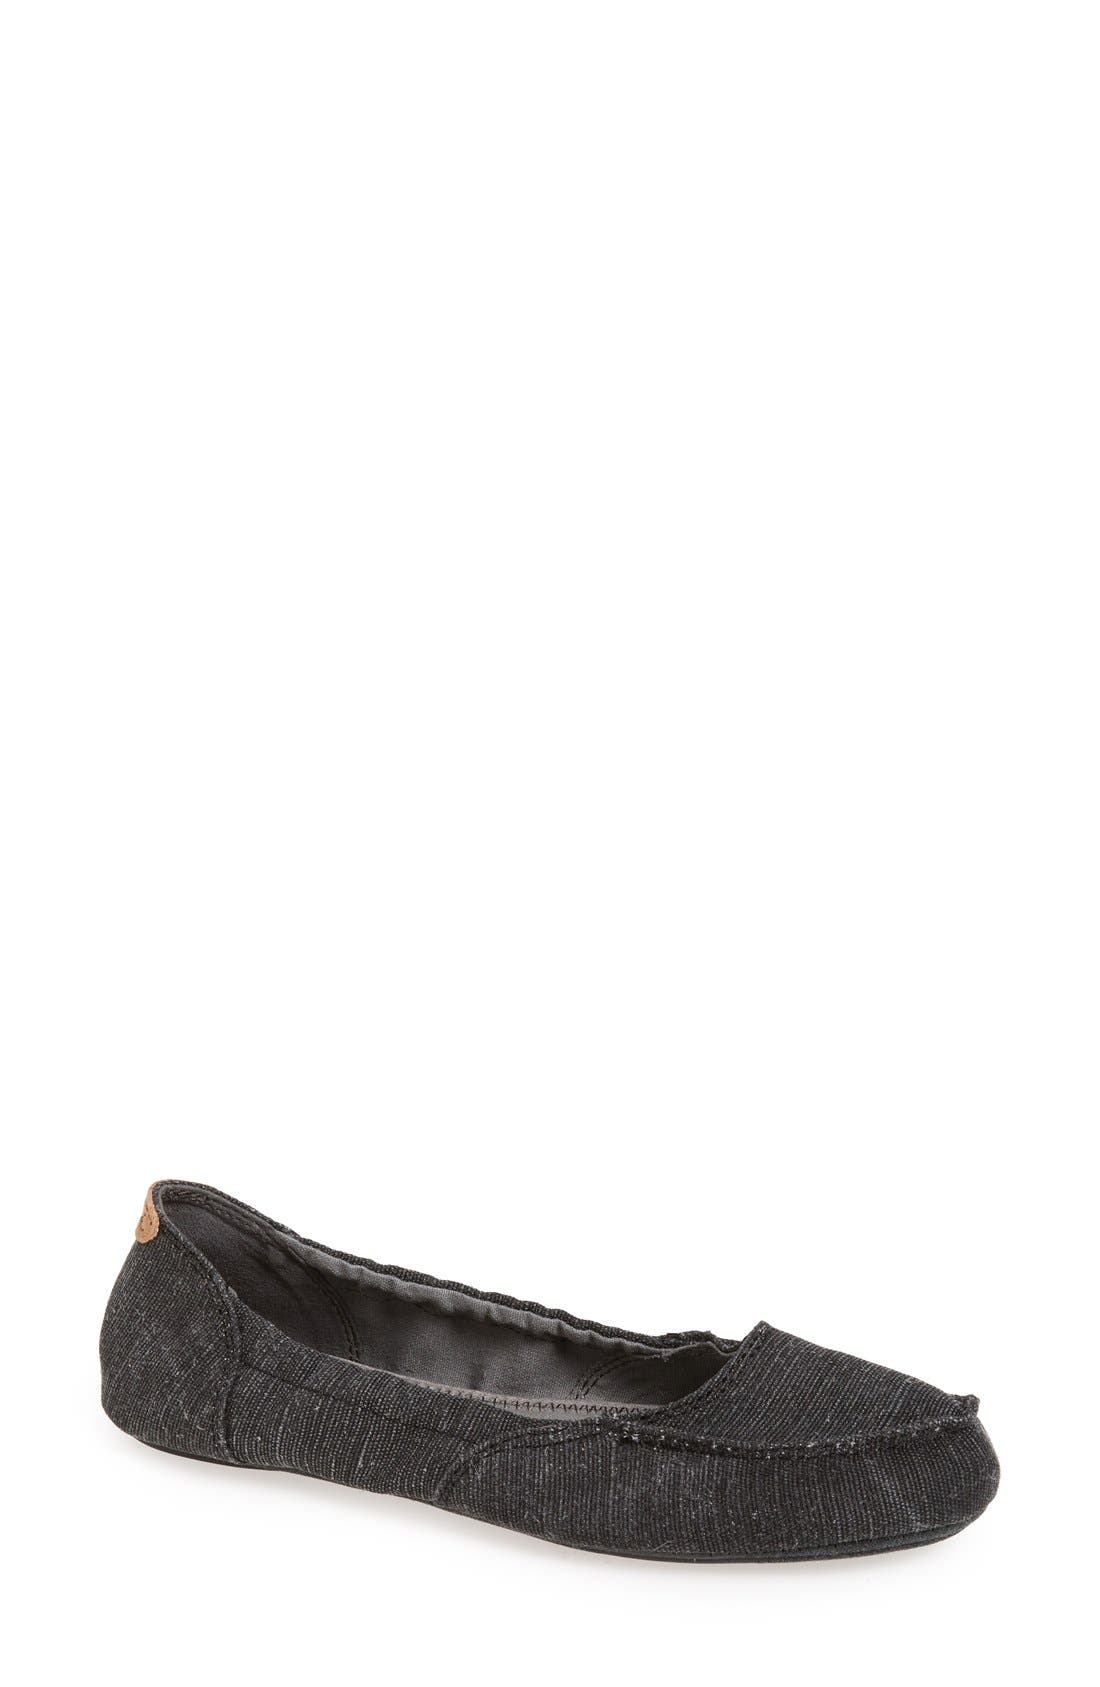 'Elle V Eight' Flat,                         Main,                         color, Black